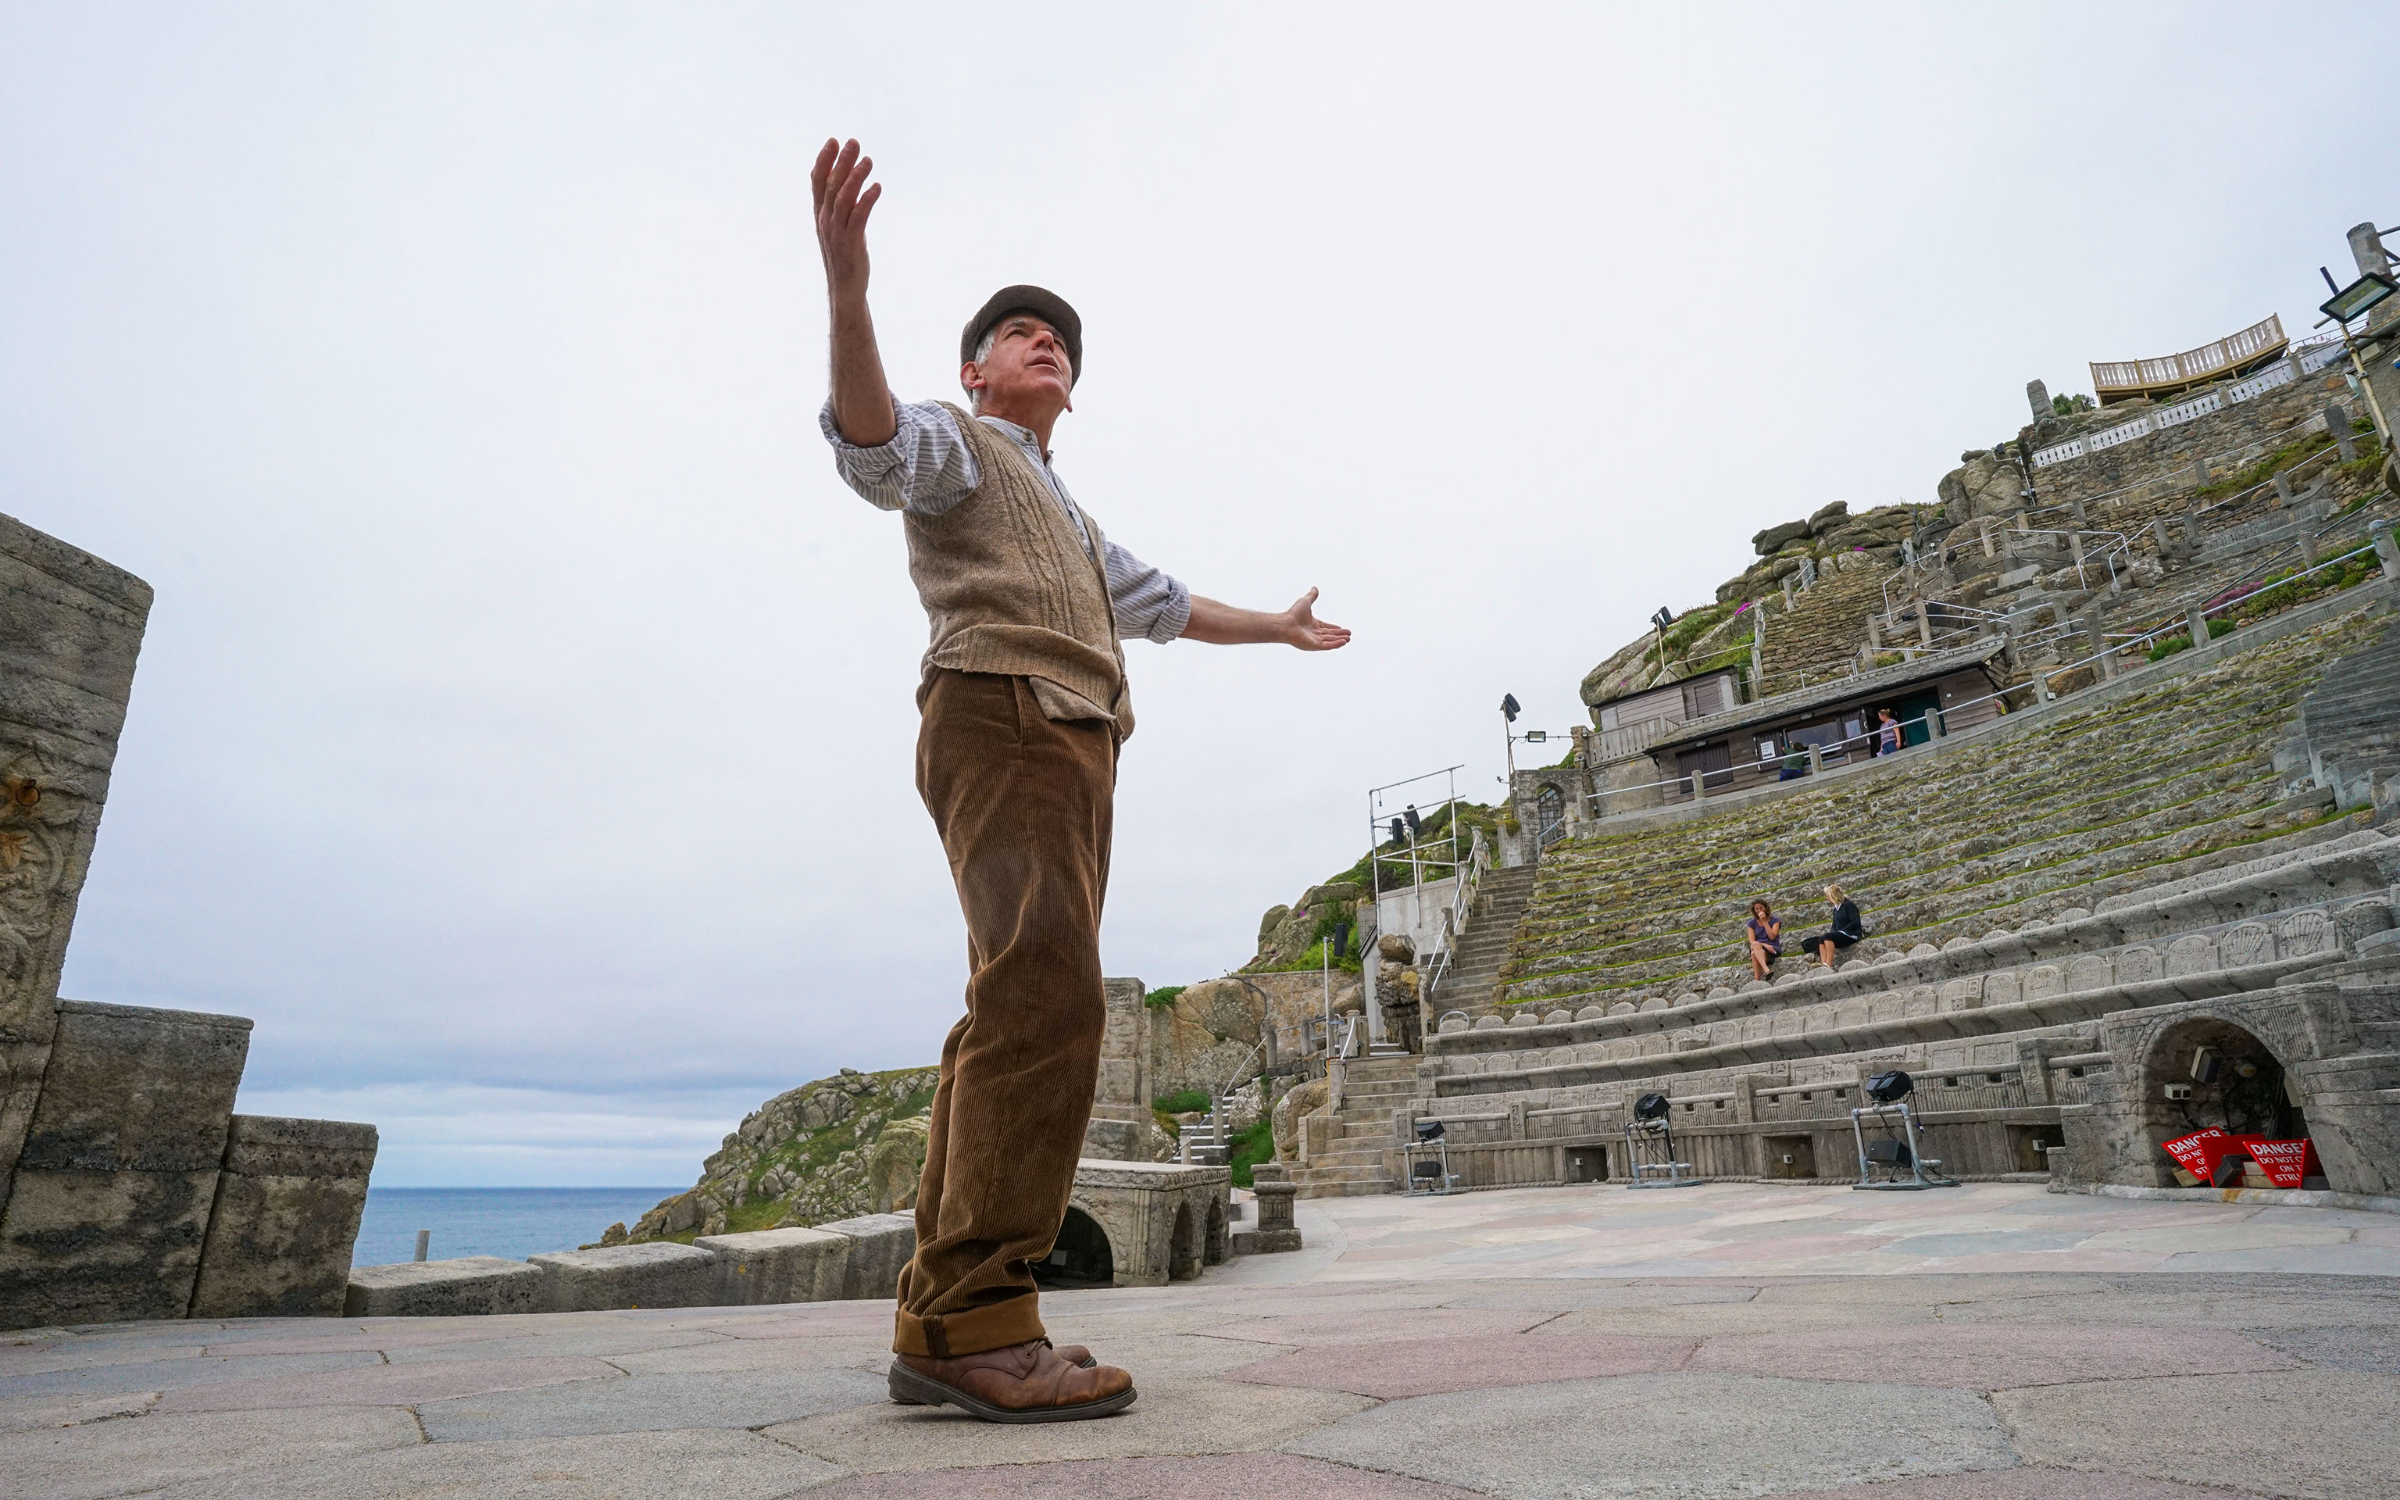 Actor Mark Harandon beckons to a lonely stage at the Minack Theatre, Cornwall, England, this summer. Credit: Hugh R Hastings via Getty Images.